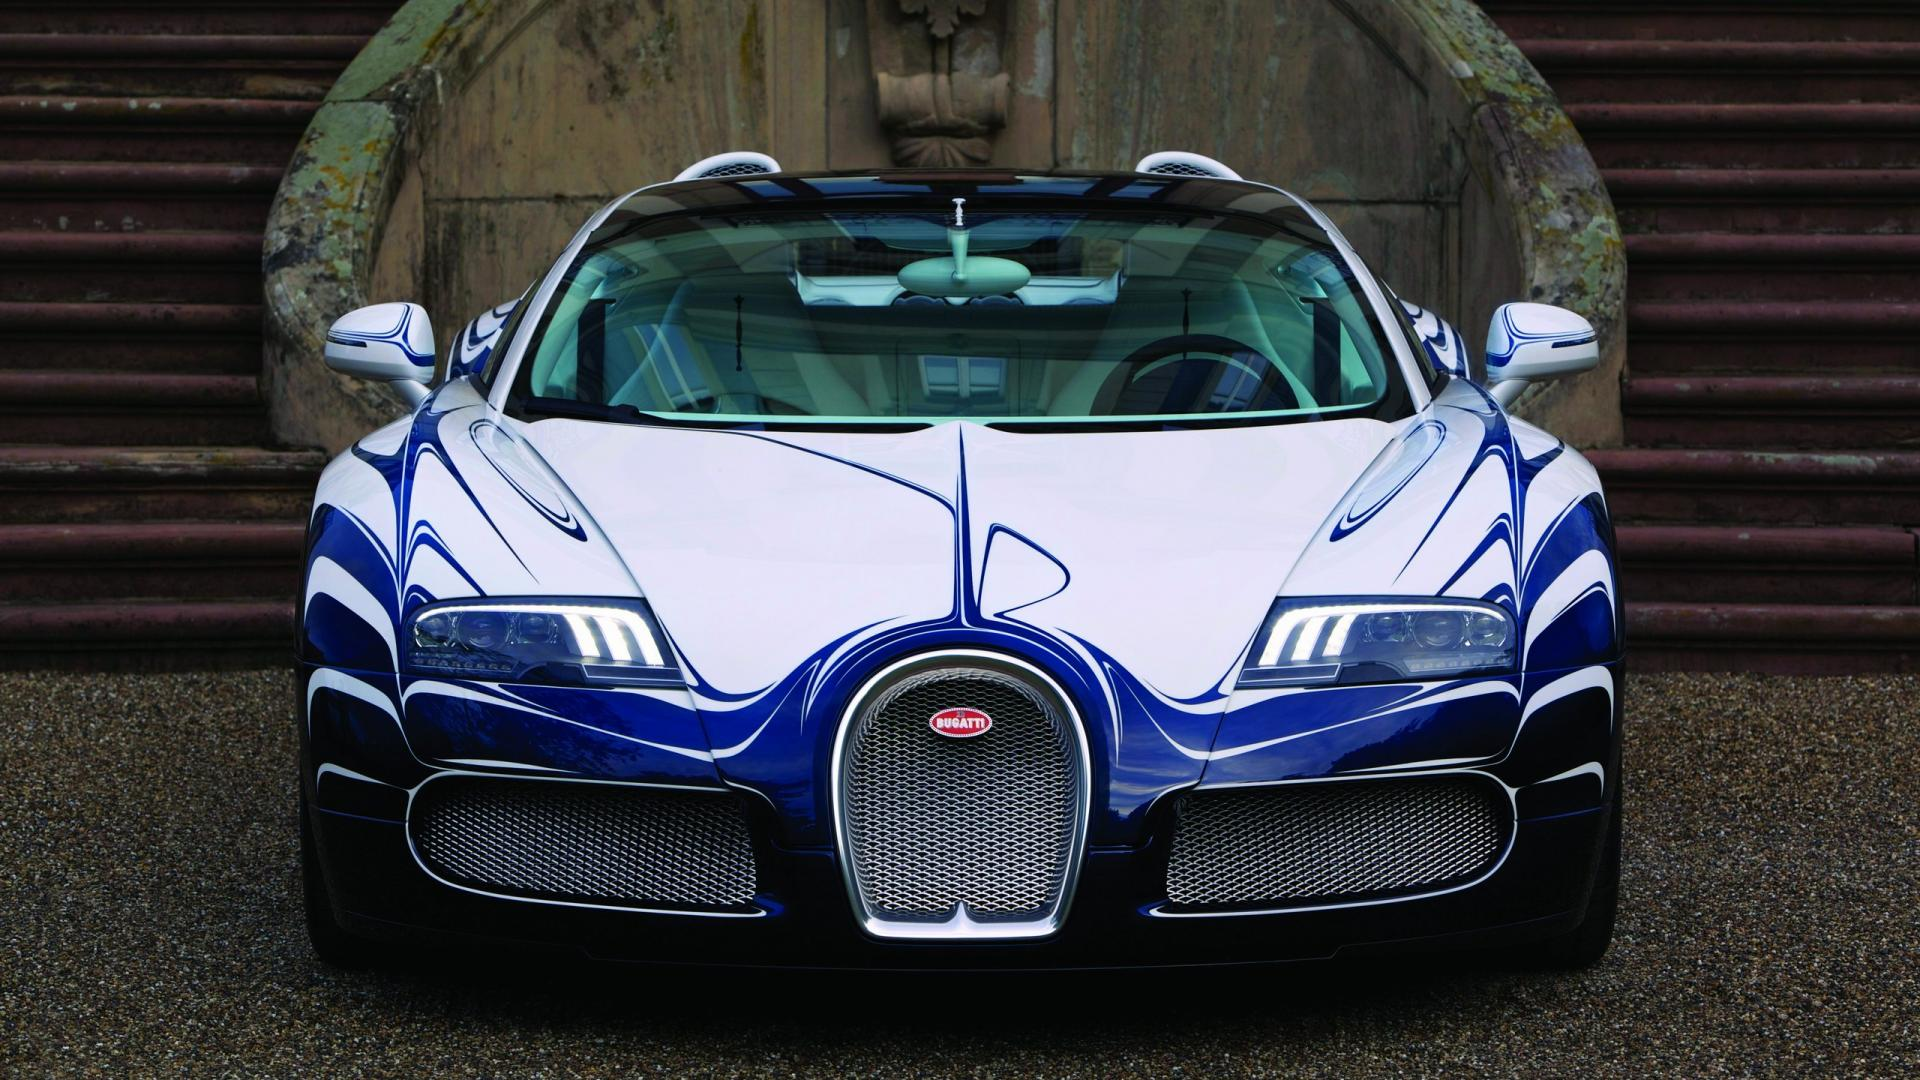 Beautiful Sports Cars Wallpapers